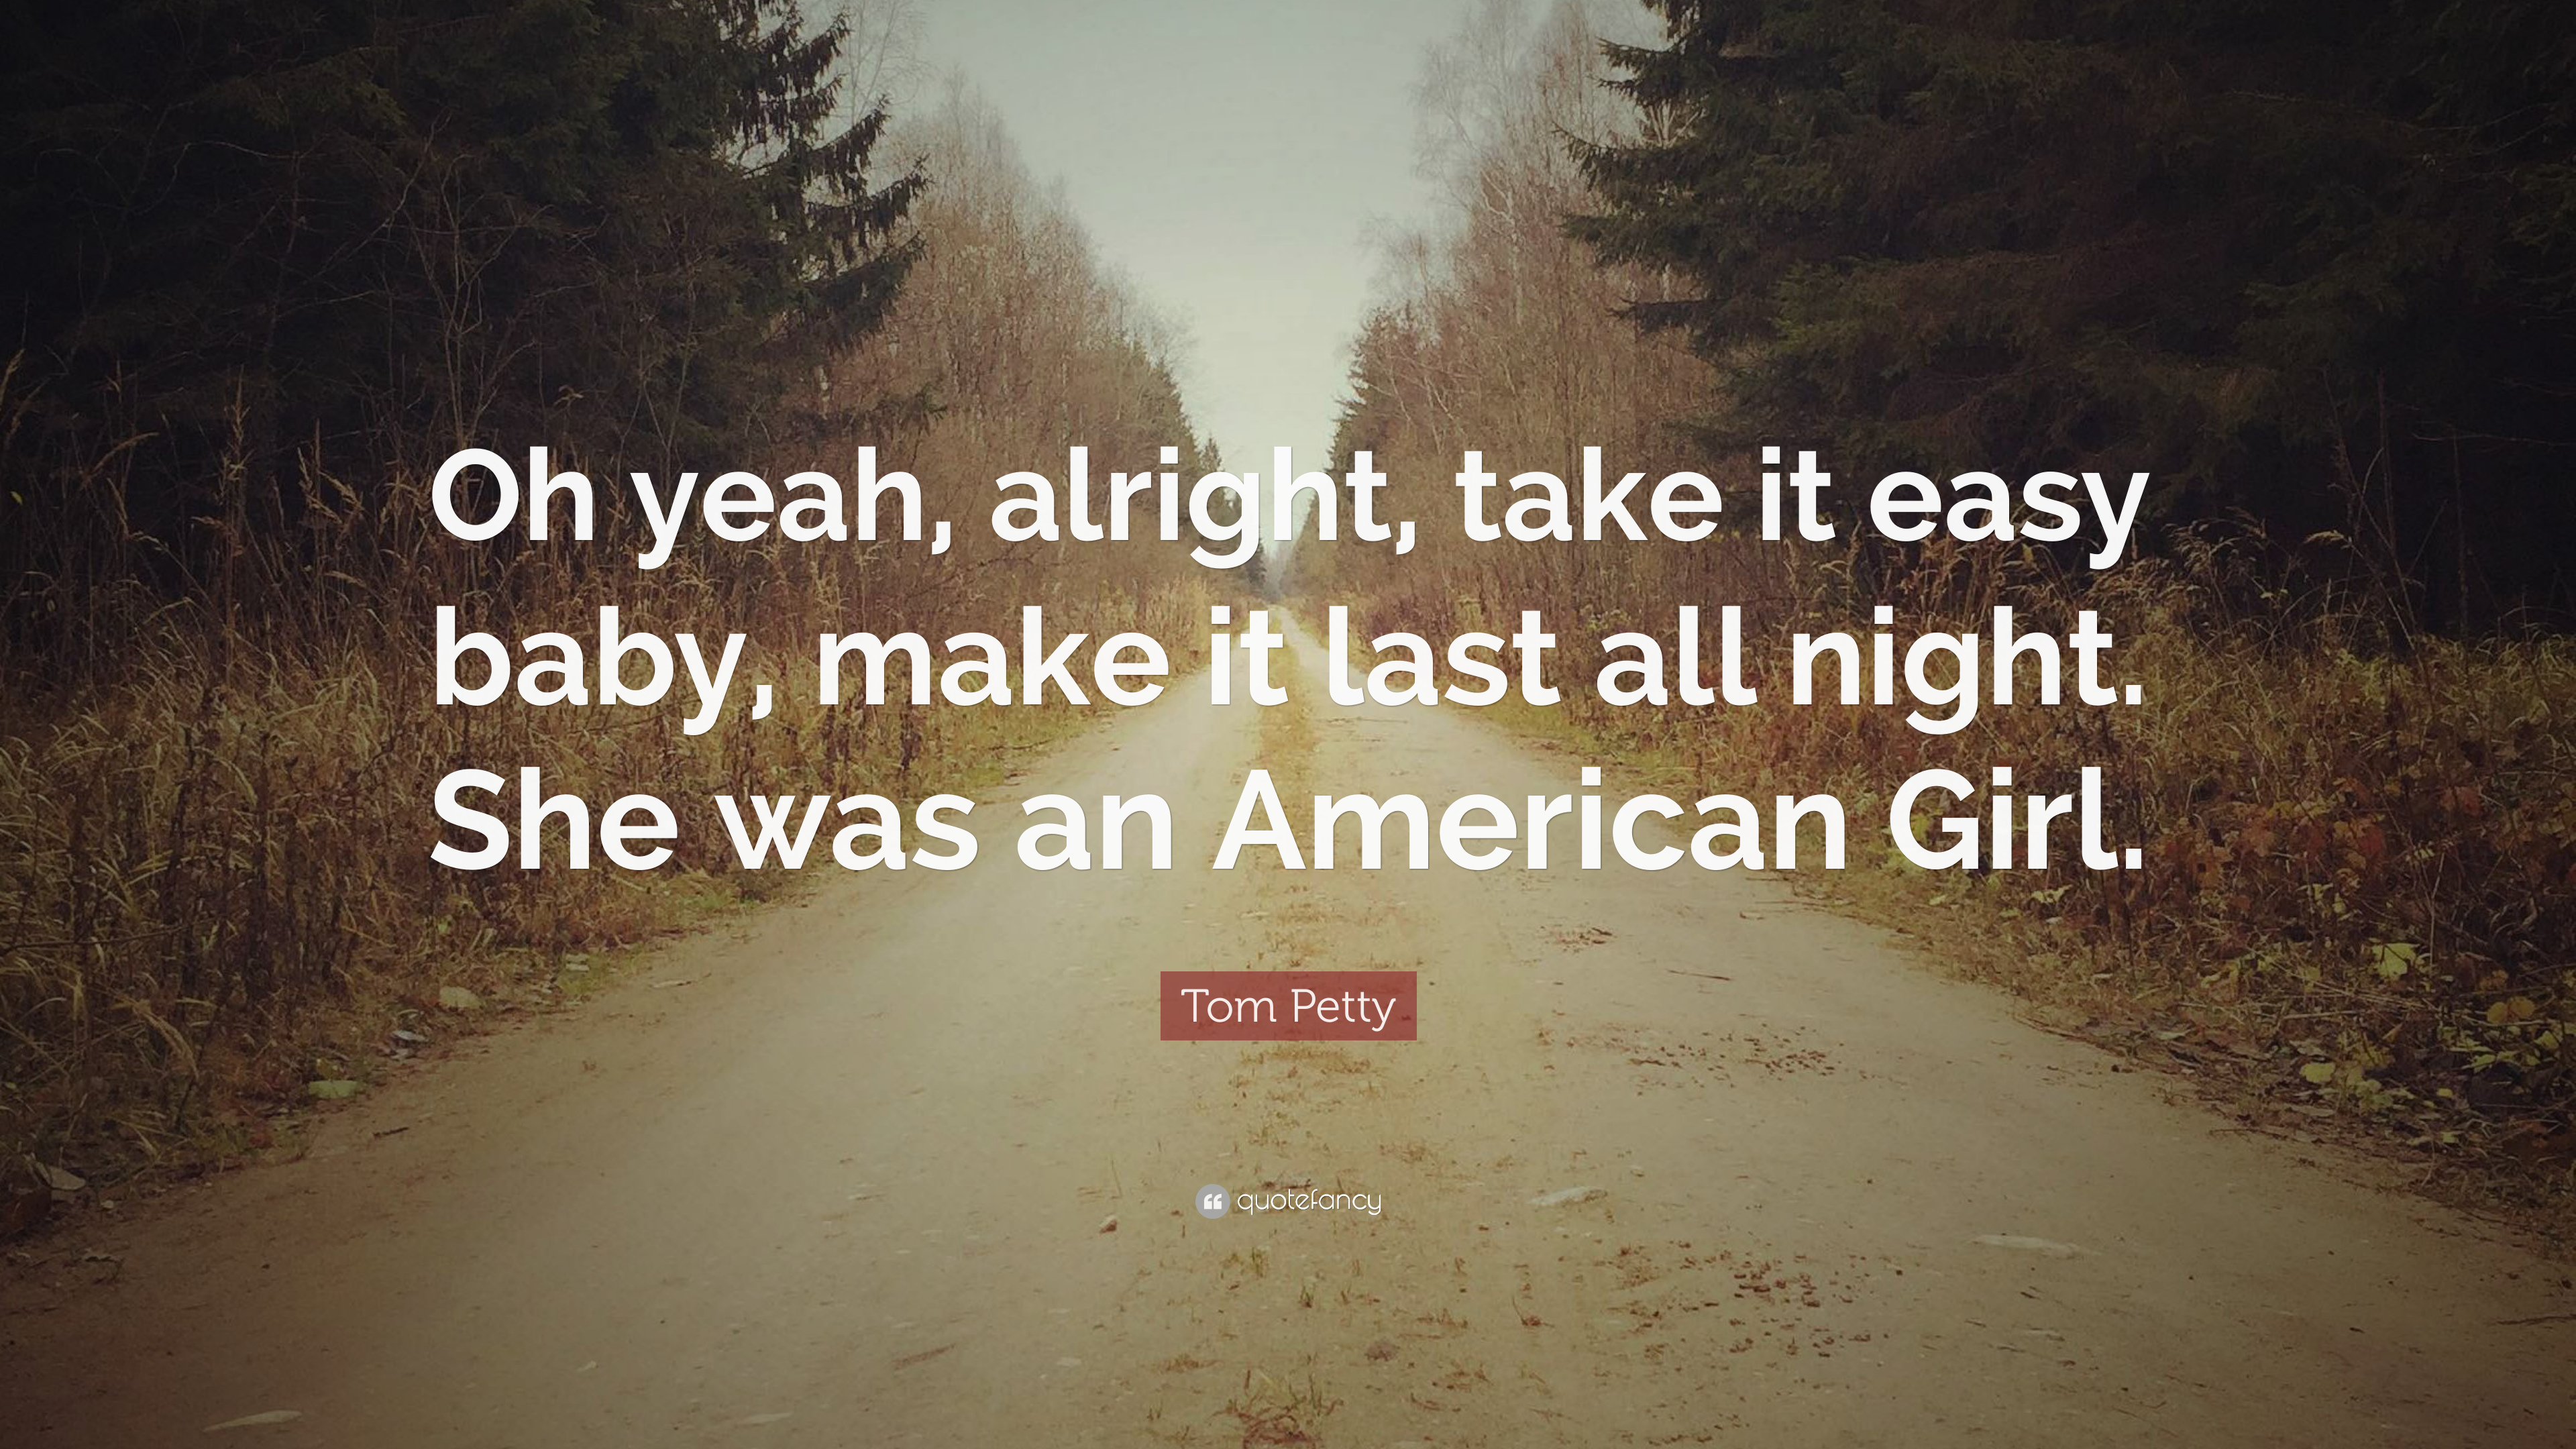 5197643-Tom-Petty-Quote-Oh-yeah-alright-